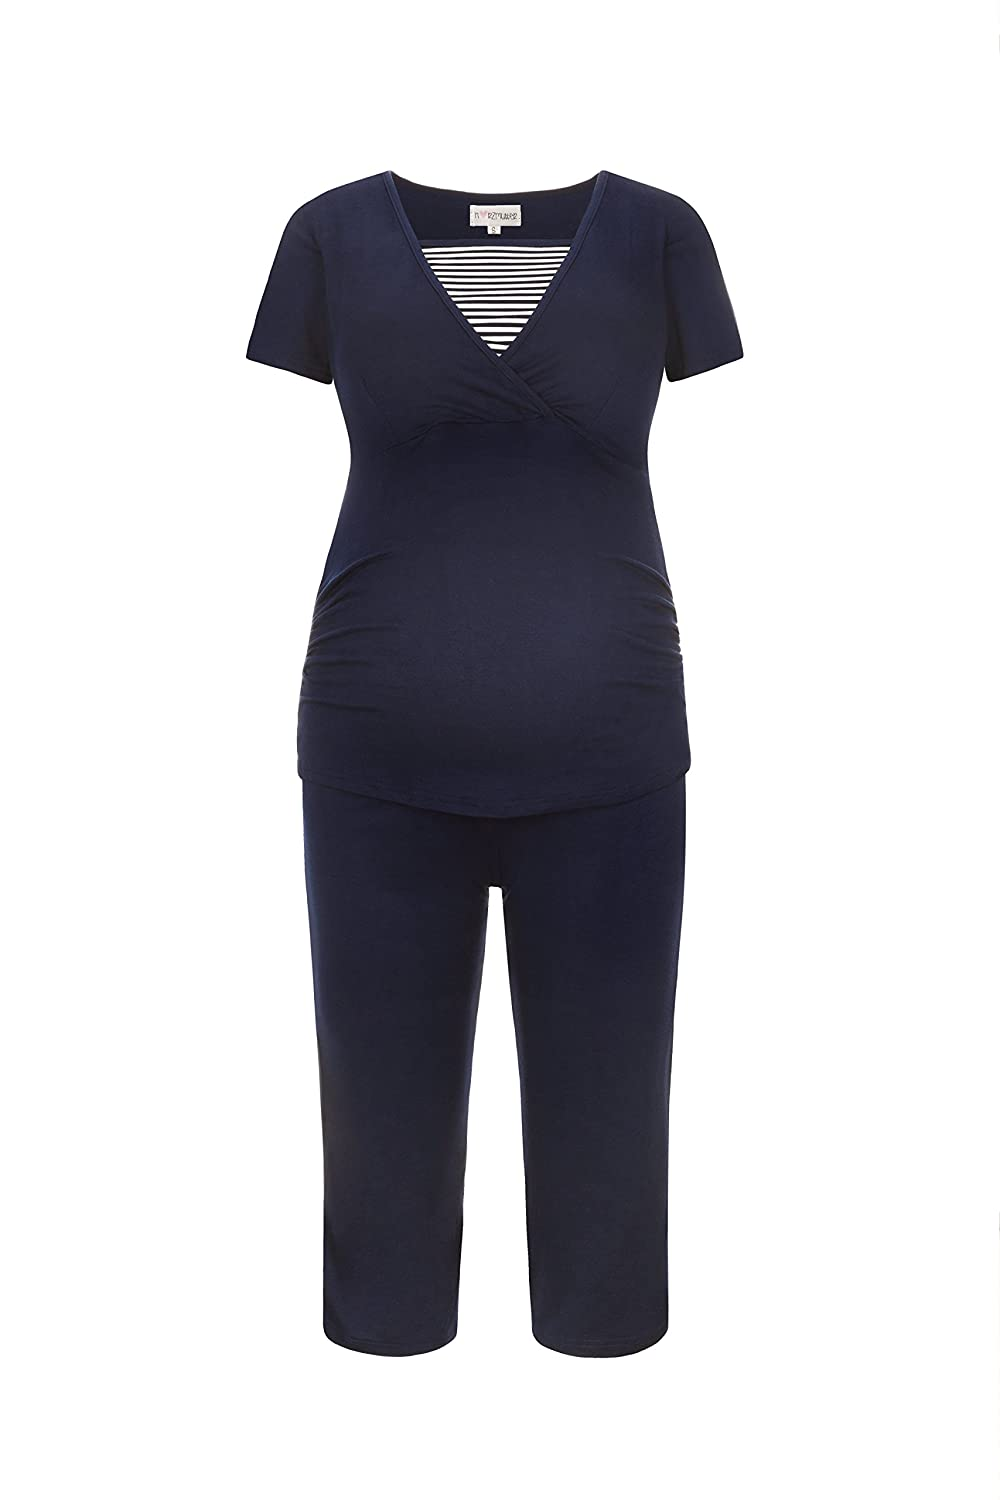 Herzmutter Maternity Pajamas-Nightwear for Pregnant Women - Pajamas-Nightwear Short Style - Out of Viscose, Striped-Maritime lace, Blue and White, 2500_2600